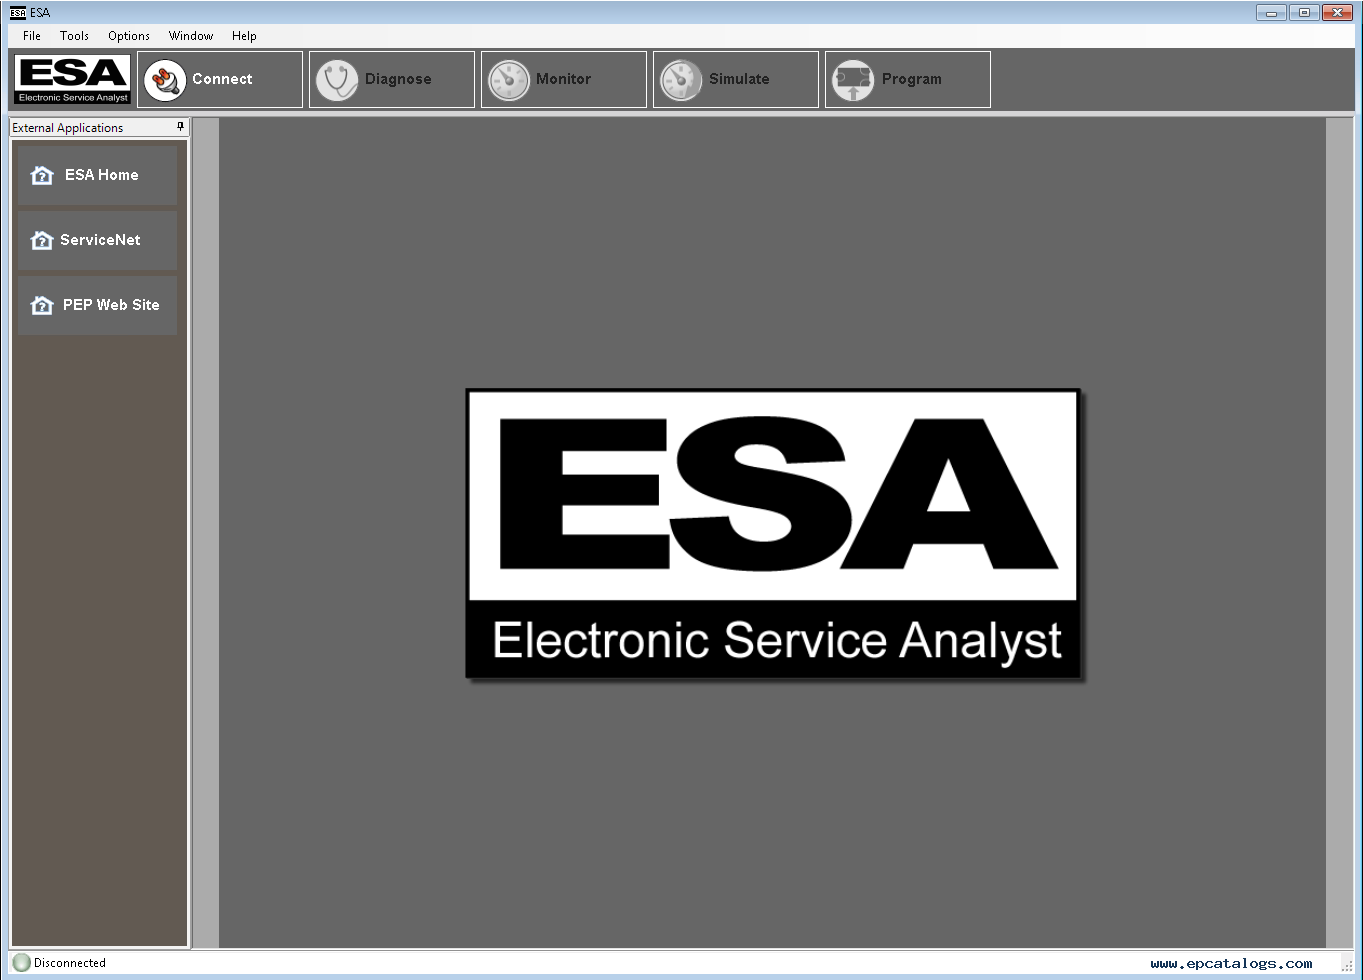 Paccar ESA Electronic Service Analyst 5.4.3.0 + Flash files